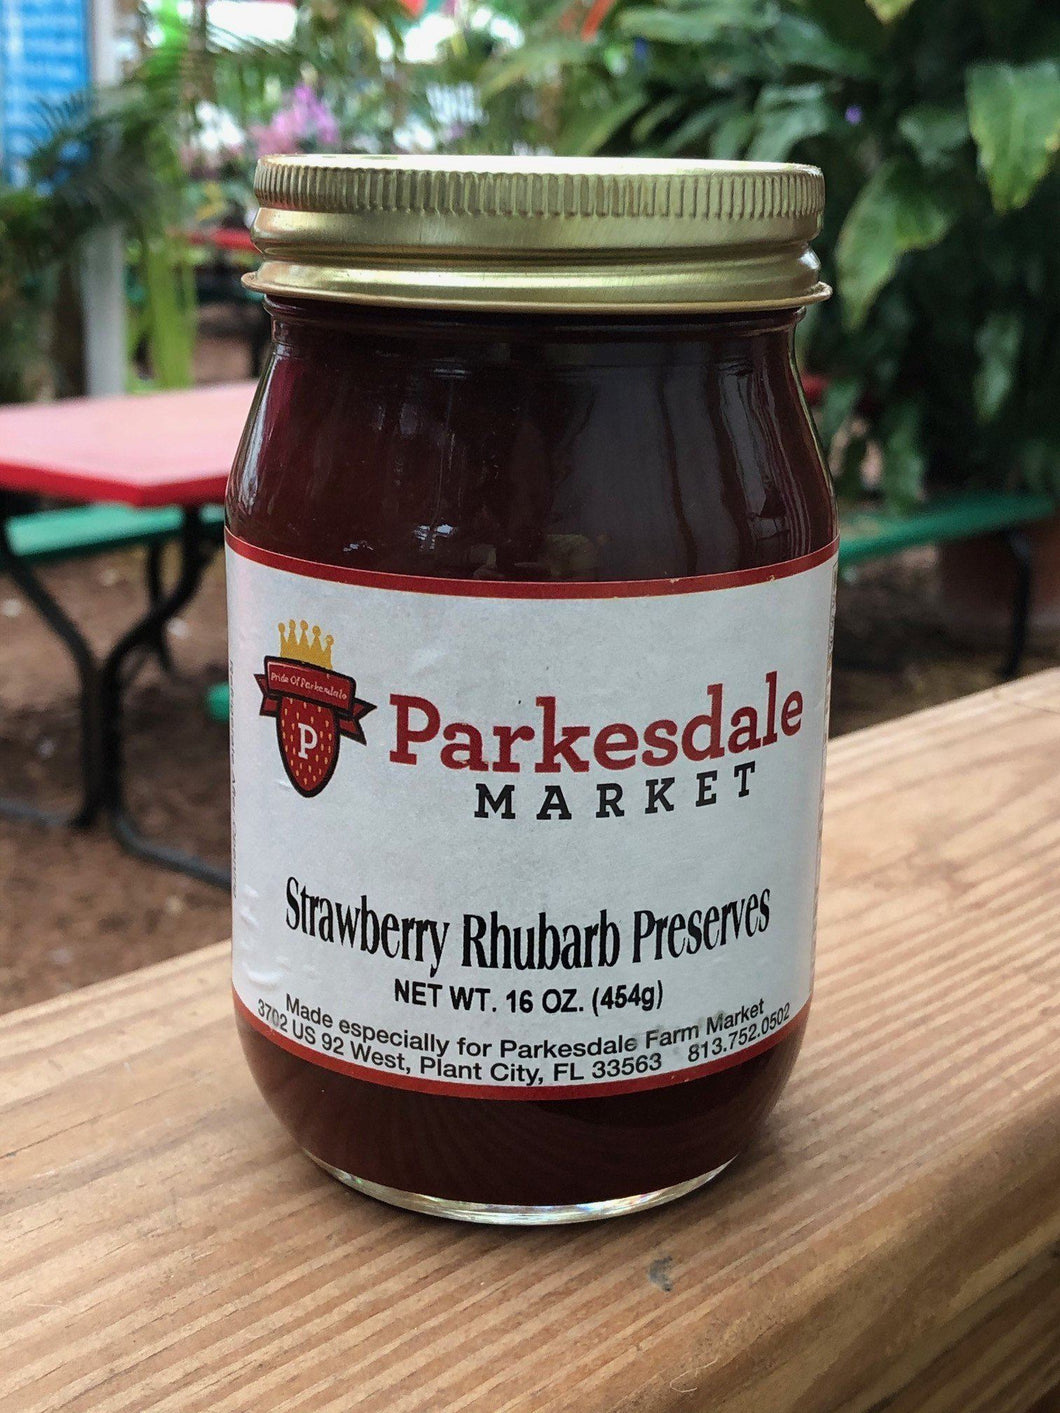 Strawberry Rhubarb Preserves - 3 pack Preserves Parkesdale Market